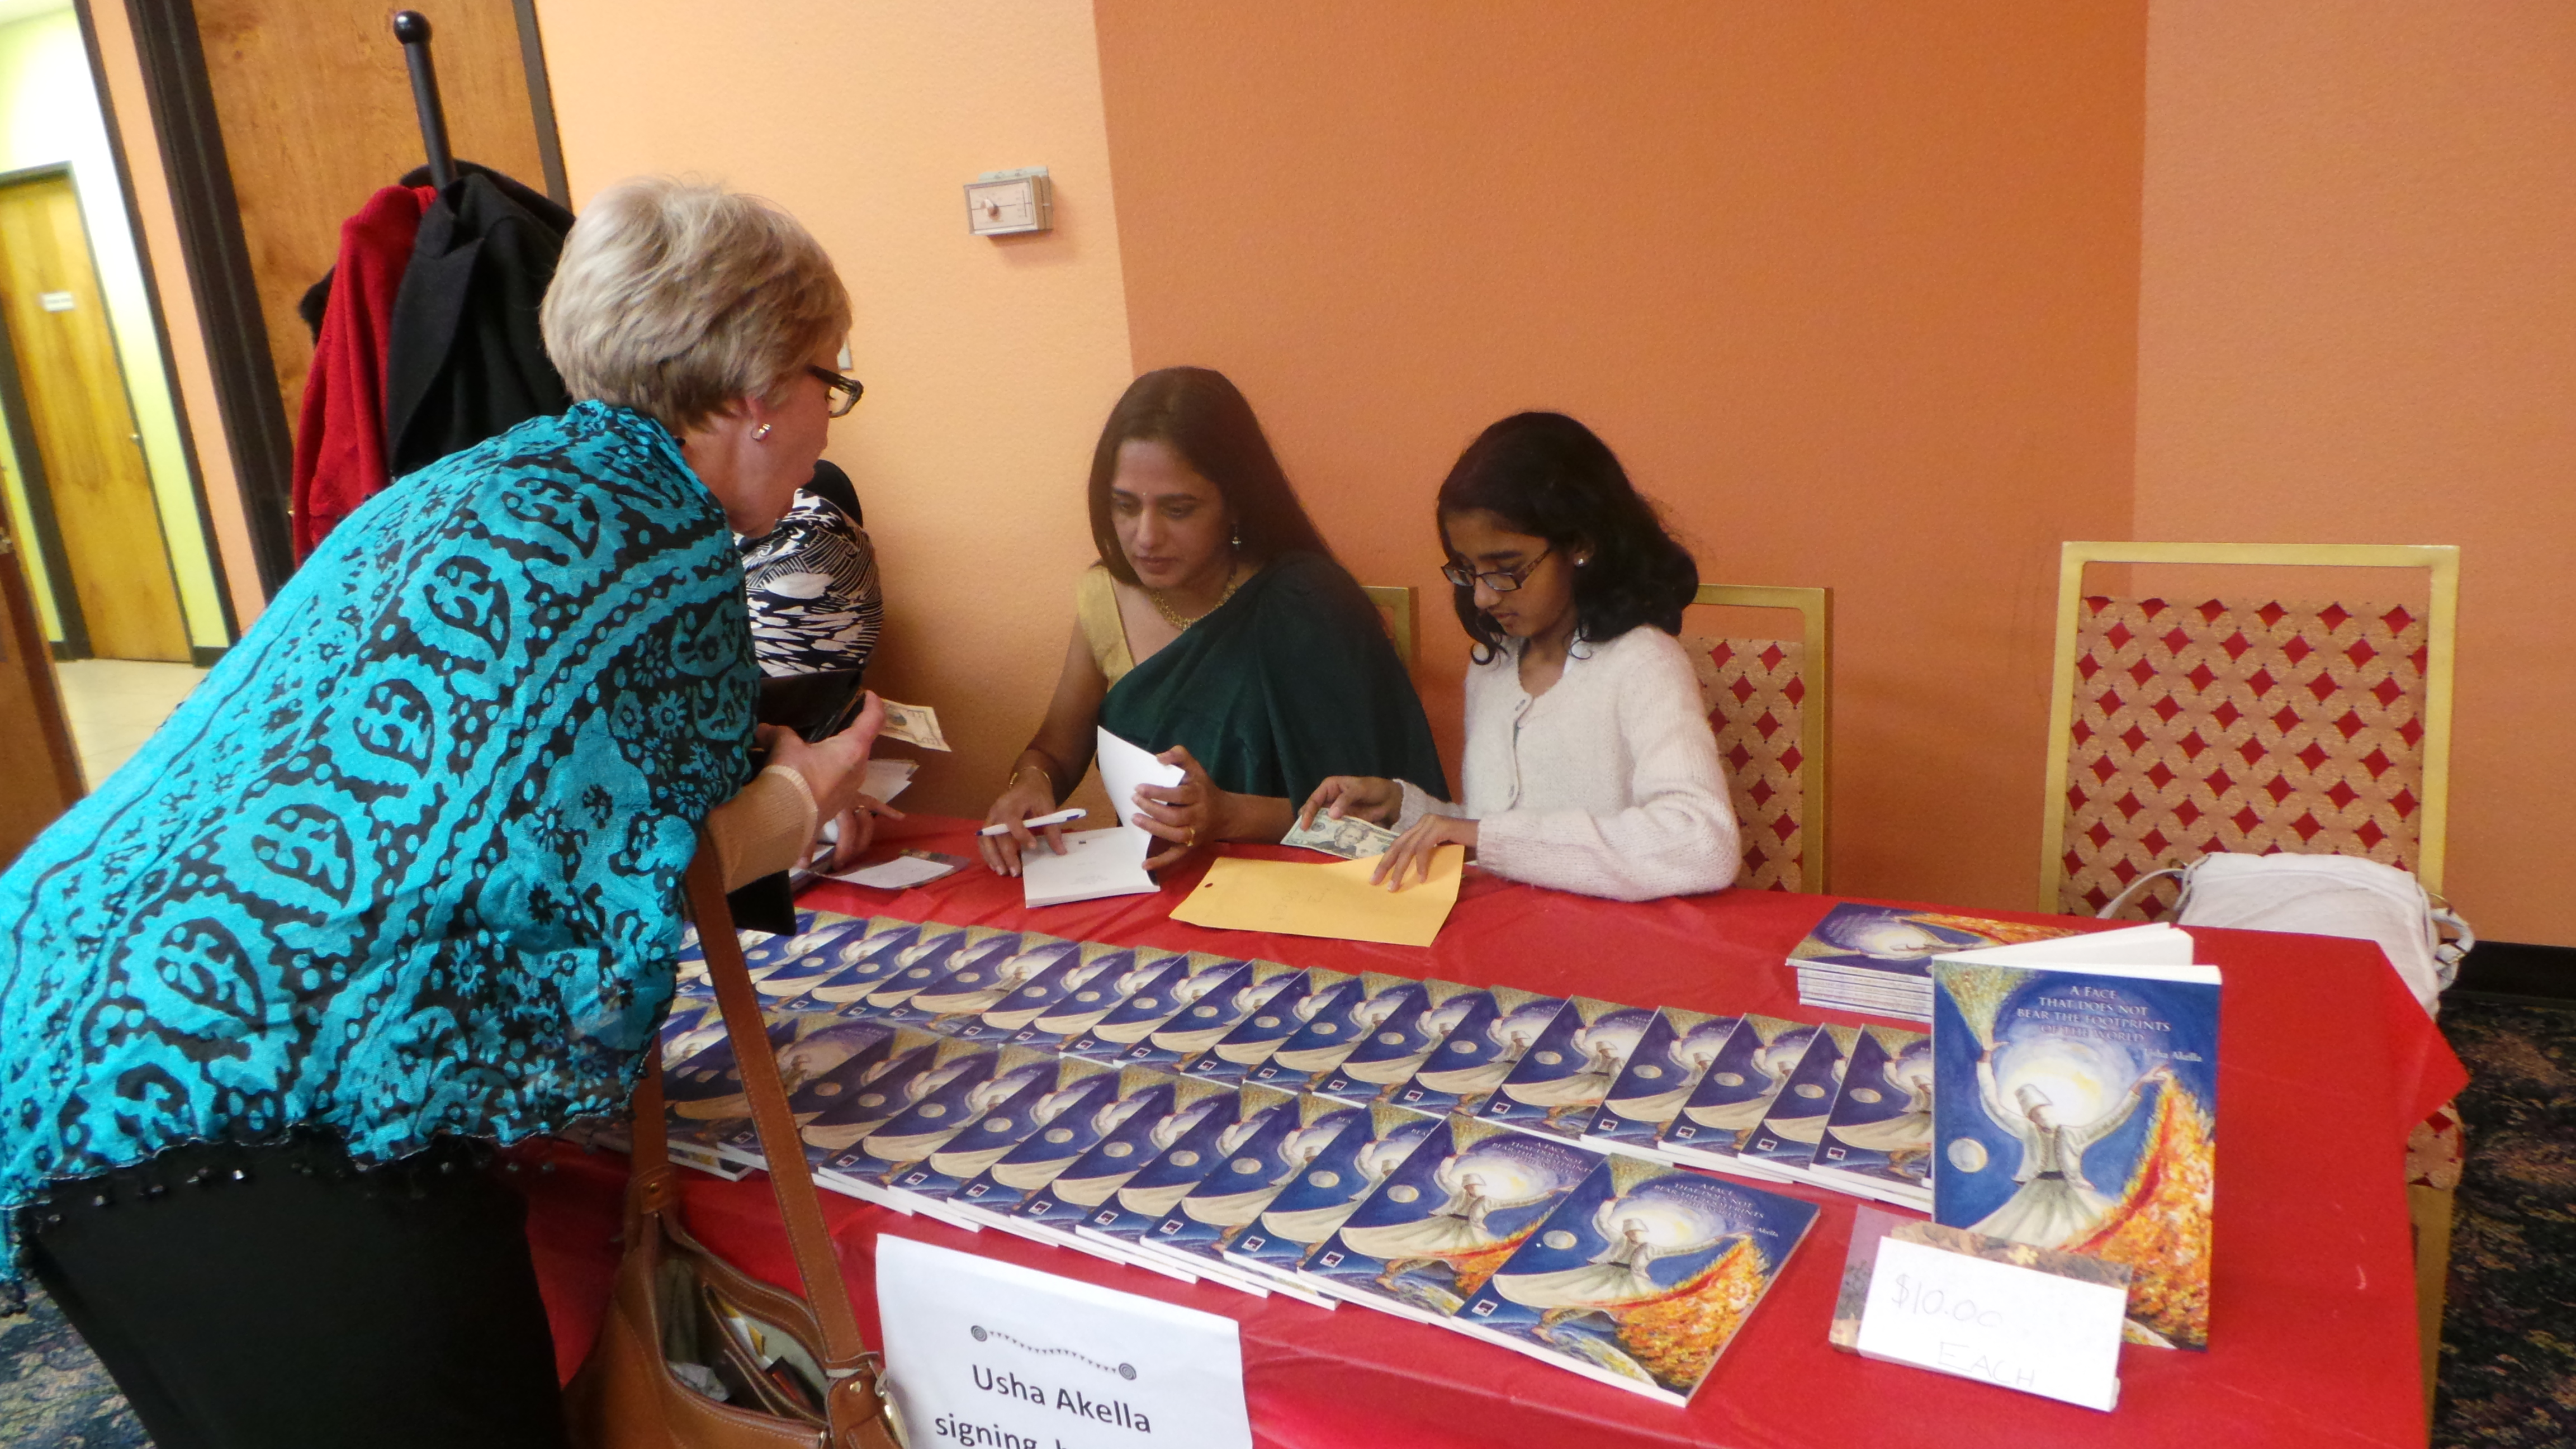 Usha Akella with her daughter Anannya at the book signing in Austin